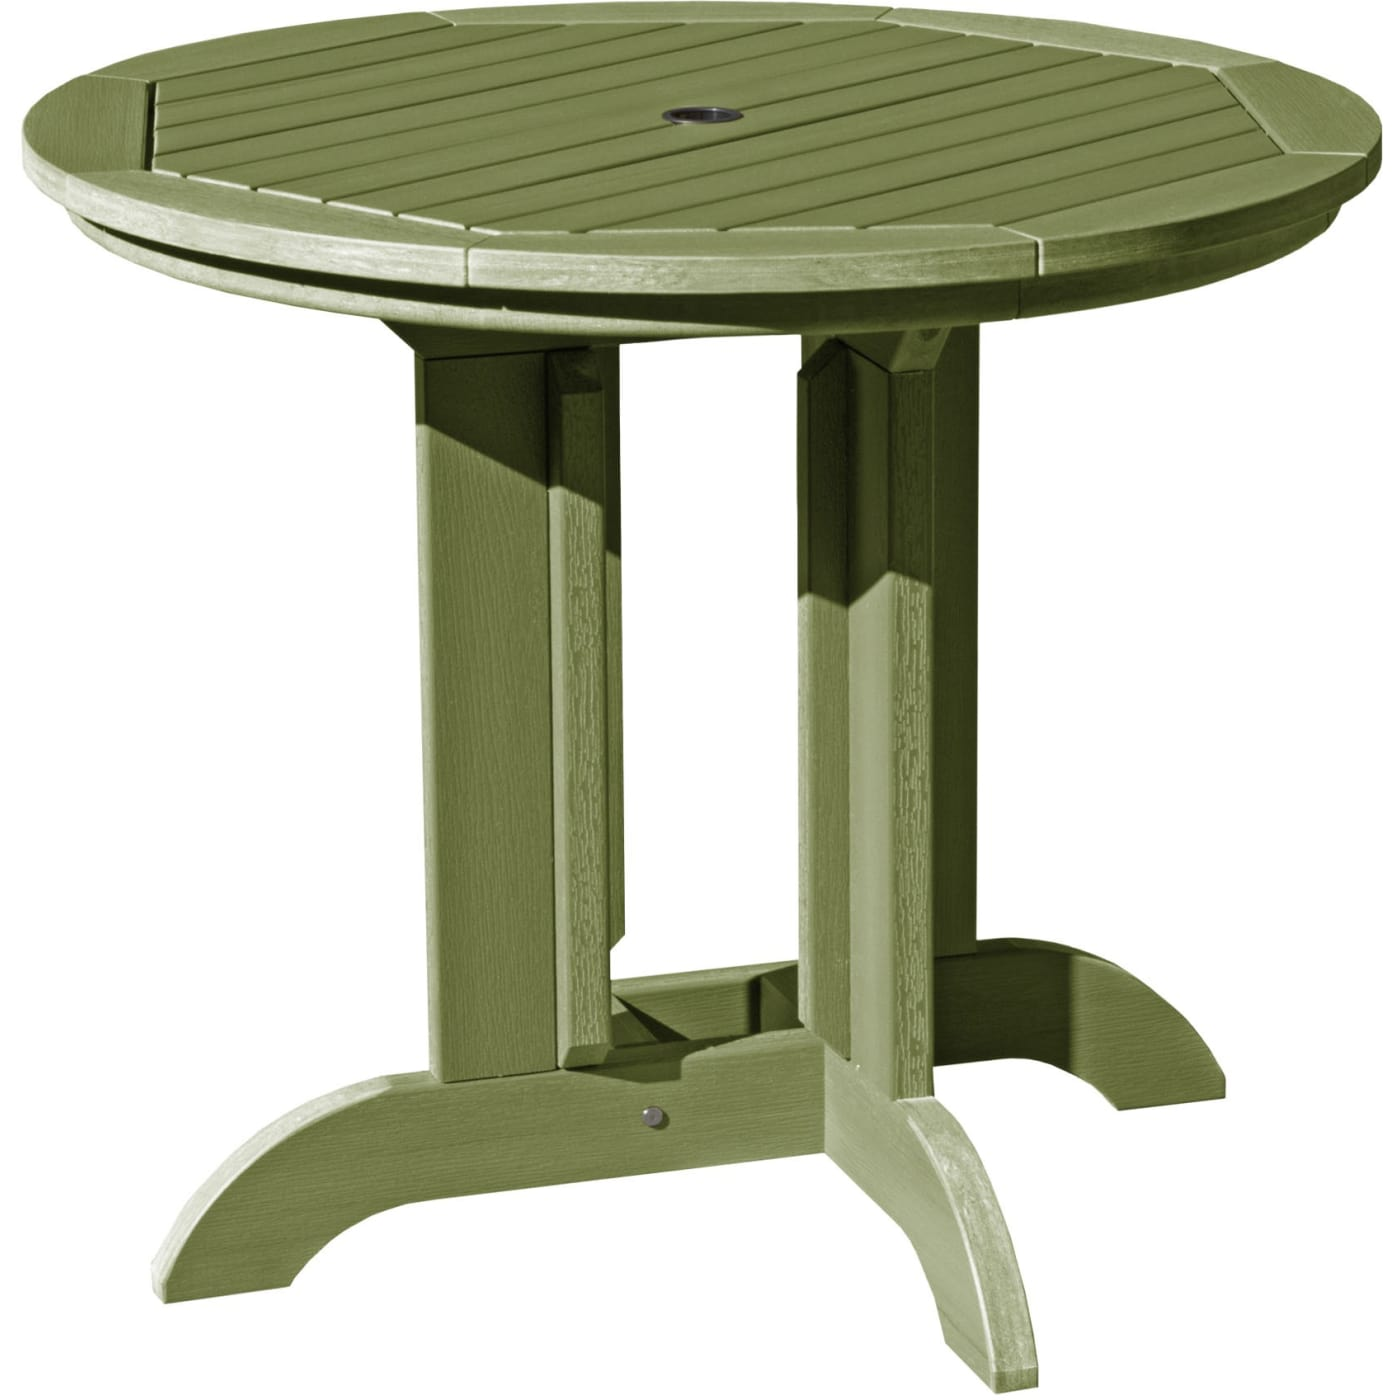 Highwood Dried Sage Round Diameter Dining Table Reviews - 36 diameter dining table